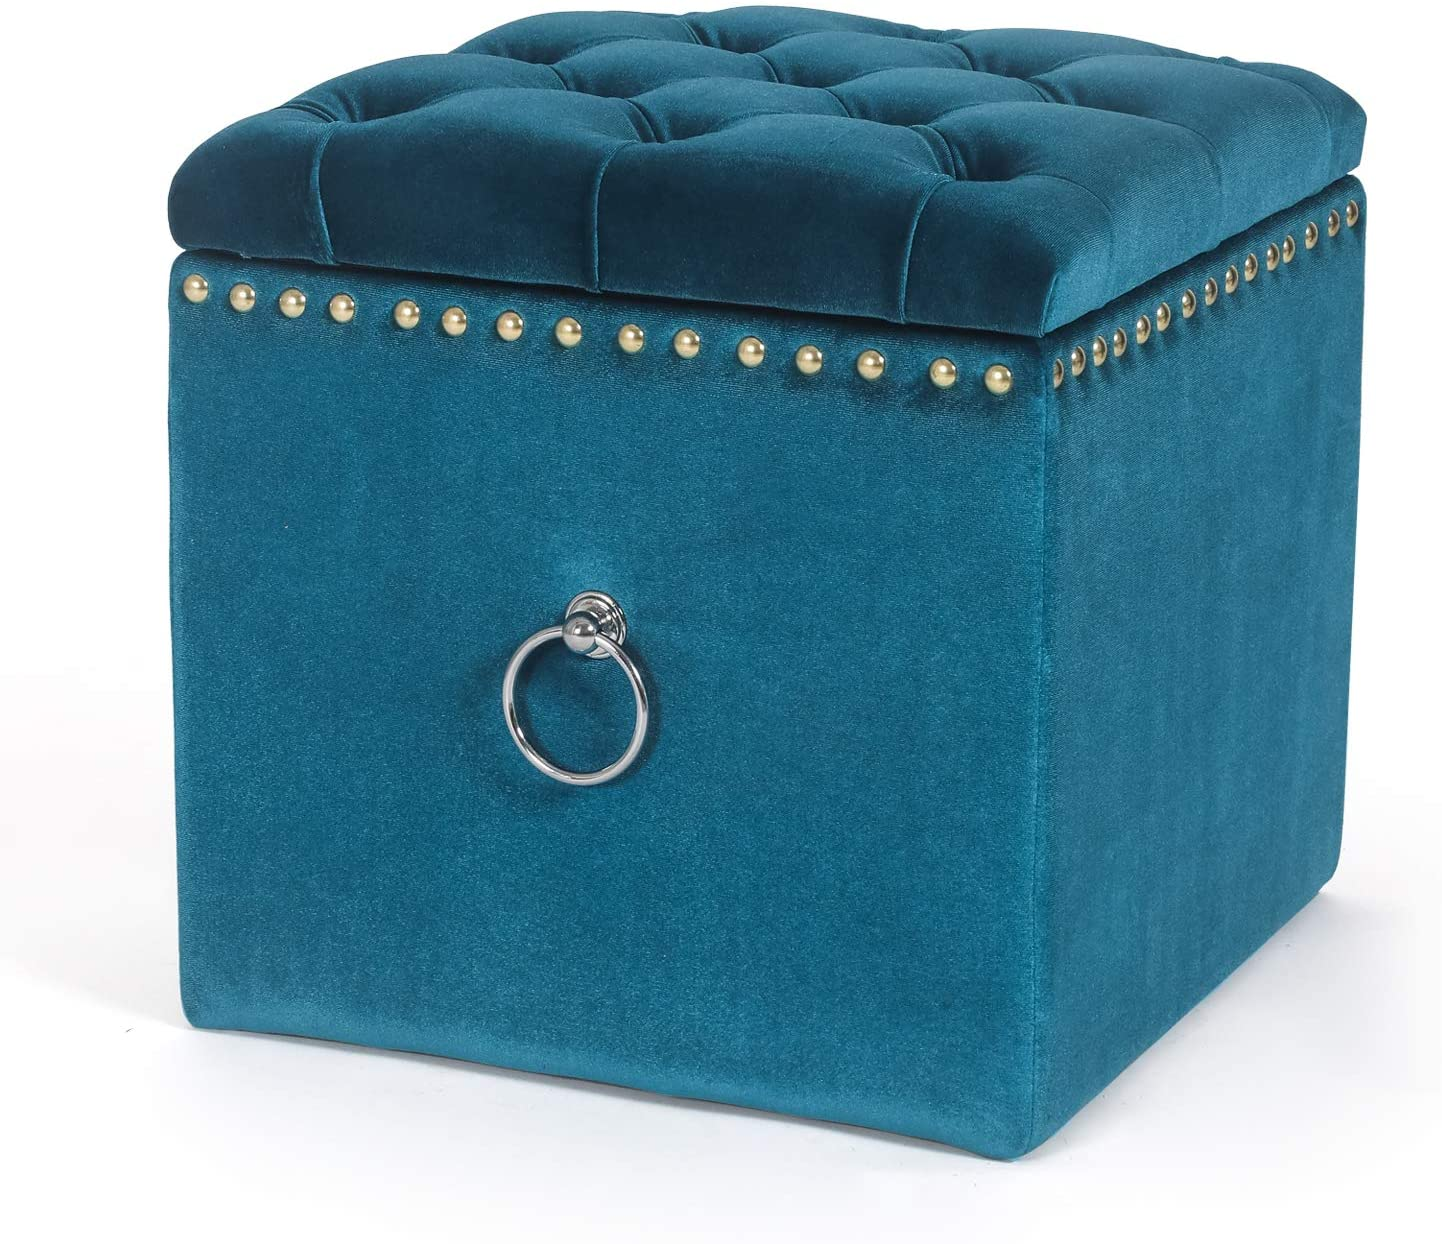 Joveco 17'' Storage Ottoman Cube- Blue Tufted Ottoman with Storage- Foot Stools and Ottomans Small- Velvet Fabric Ottomans with Rivet for Chair Coffee Table Ottoman Footrest- Elegant Soft Microfiber